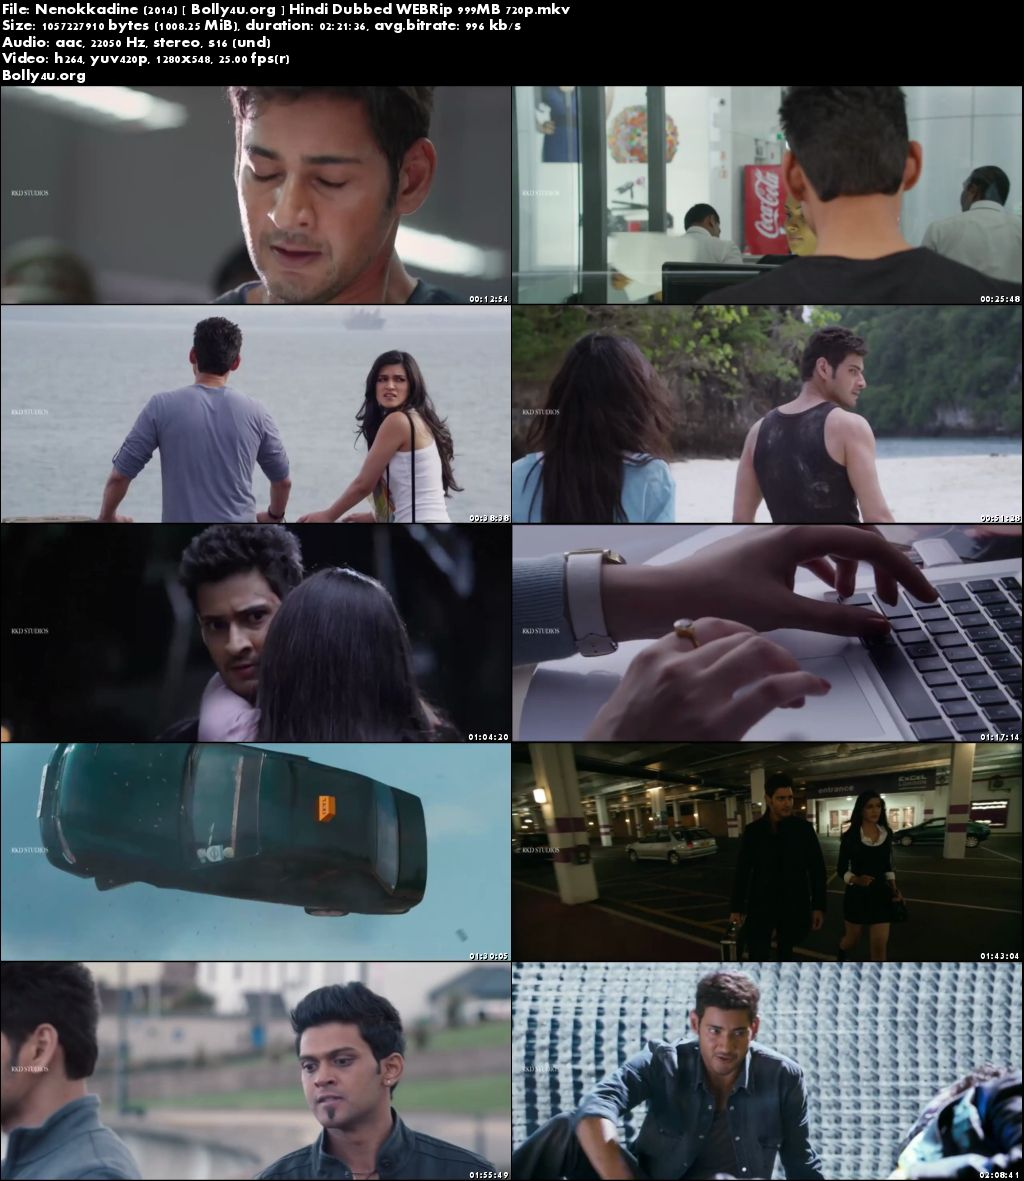 1 Nenokkadine 2014 WEBRip 999Mb Hindi Dubbed 720p Download